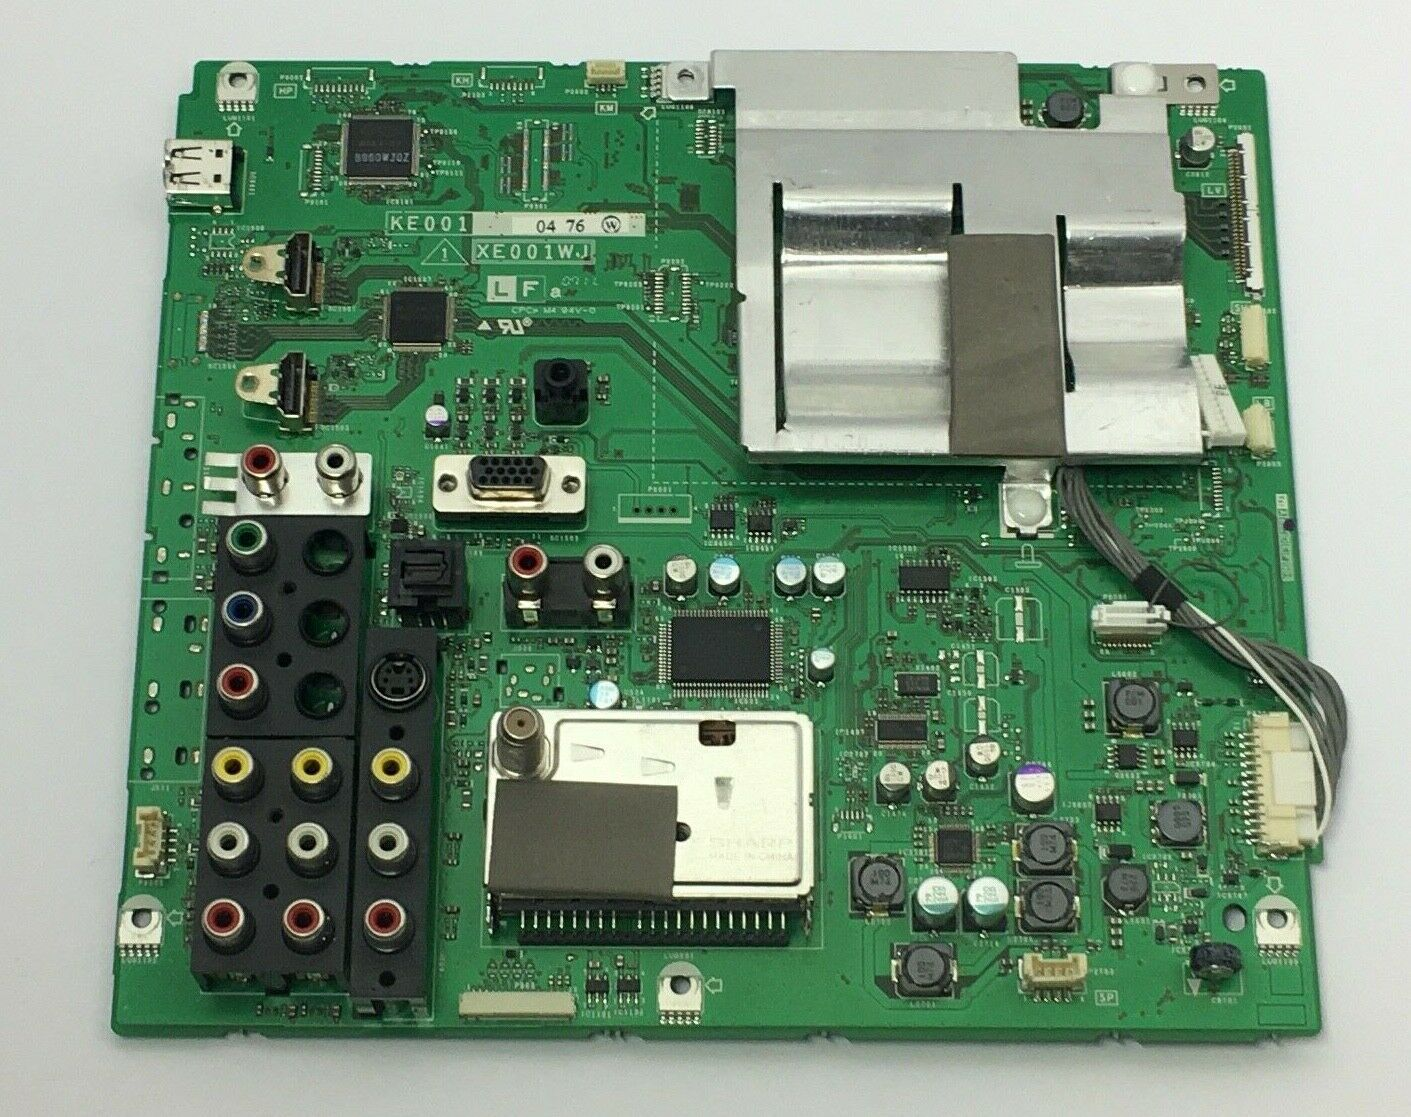 Primary image for SHARP MAINB BOARD KE001 XE001WJ, FREE SHIPPING